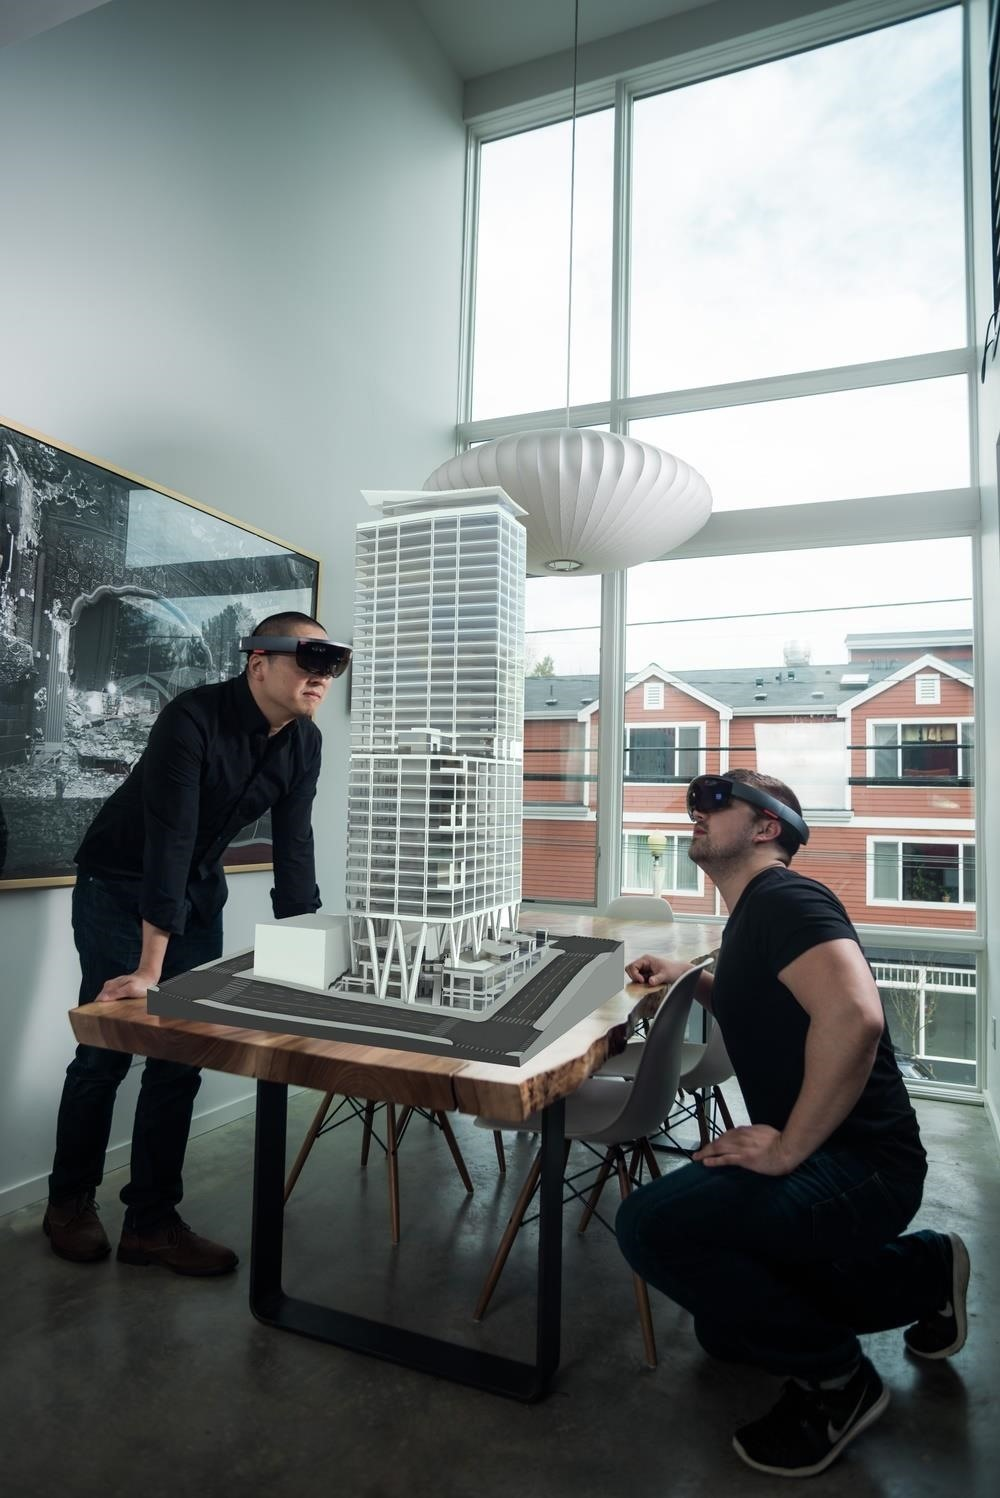 Studio 216 Constructs Architectural Visions in Mixed Reality